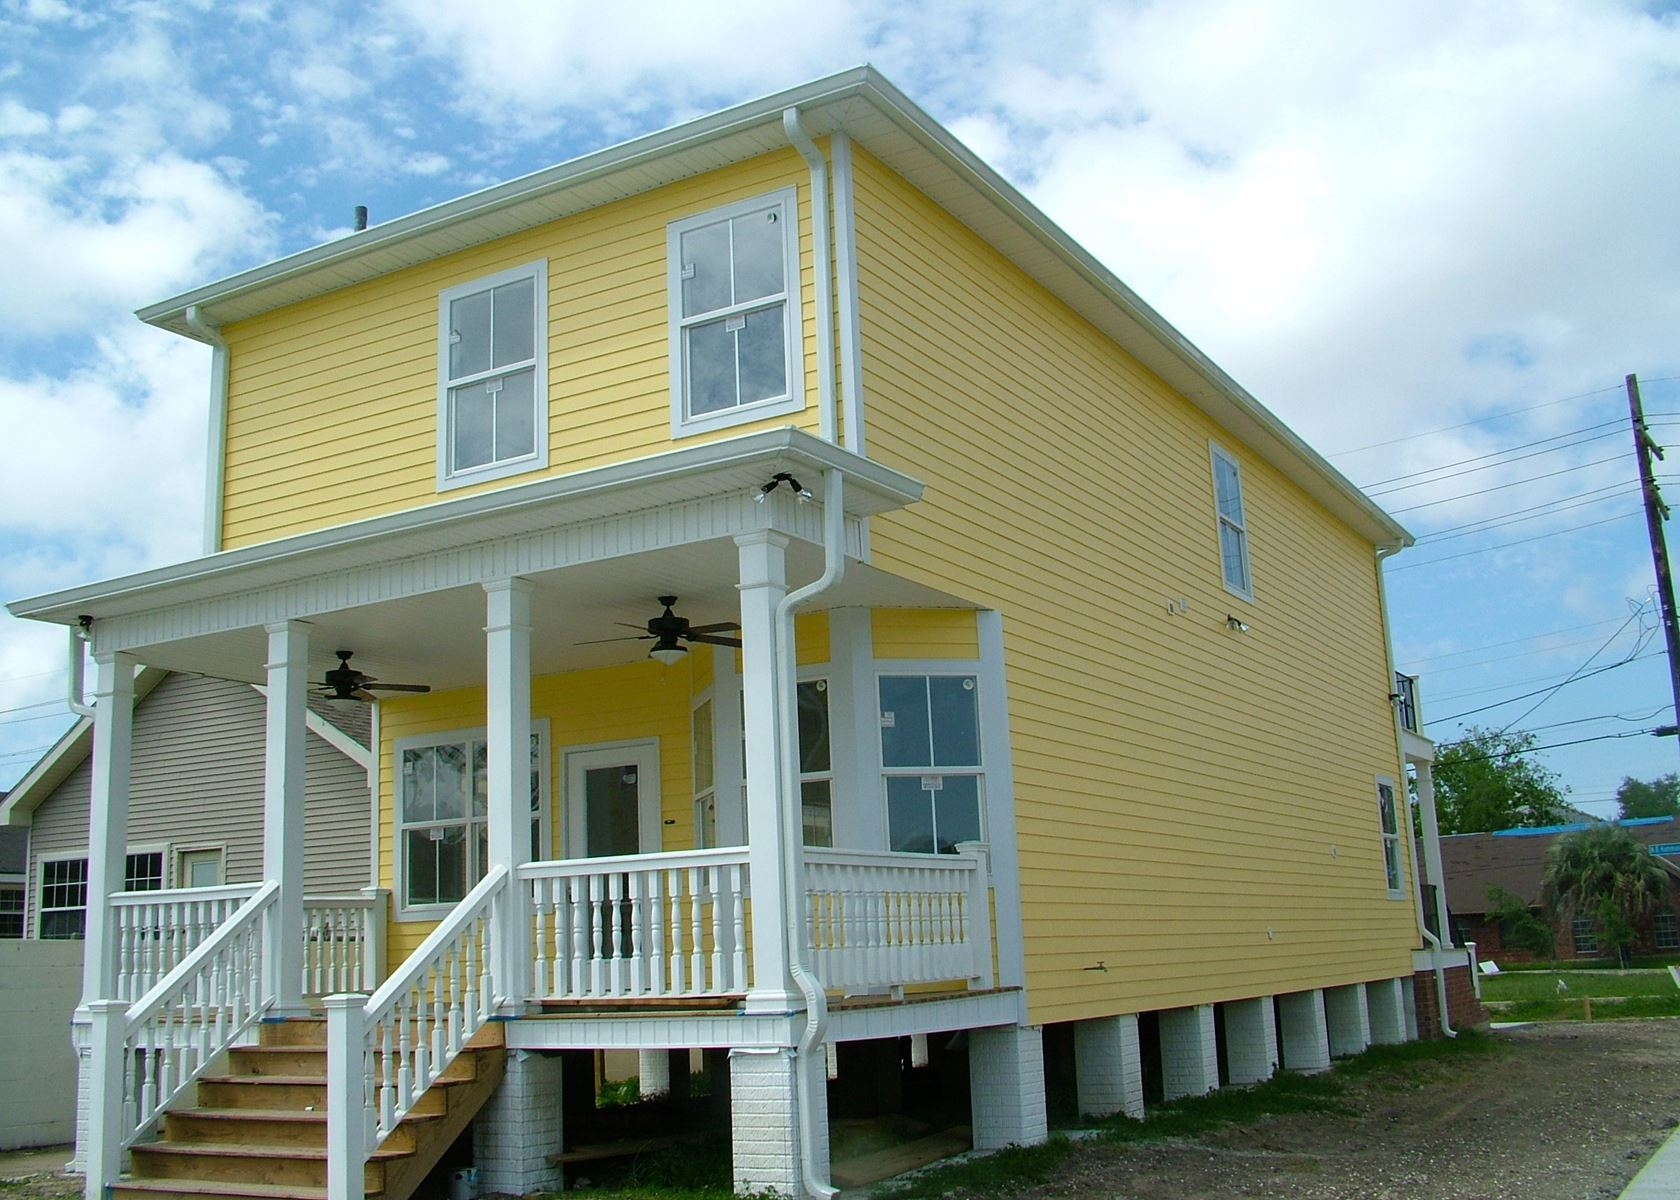 Exterior home improvement contractors in new orleans louisiana siding patios gutters windows - Exterior home repairs ...